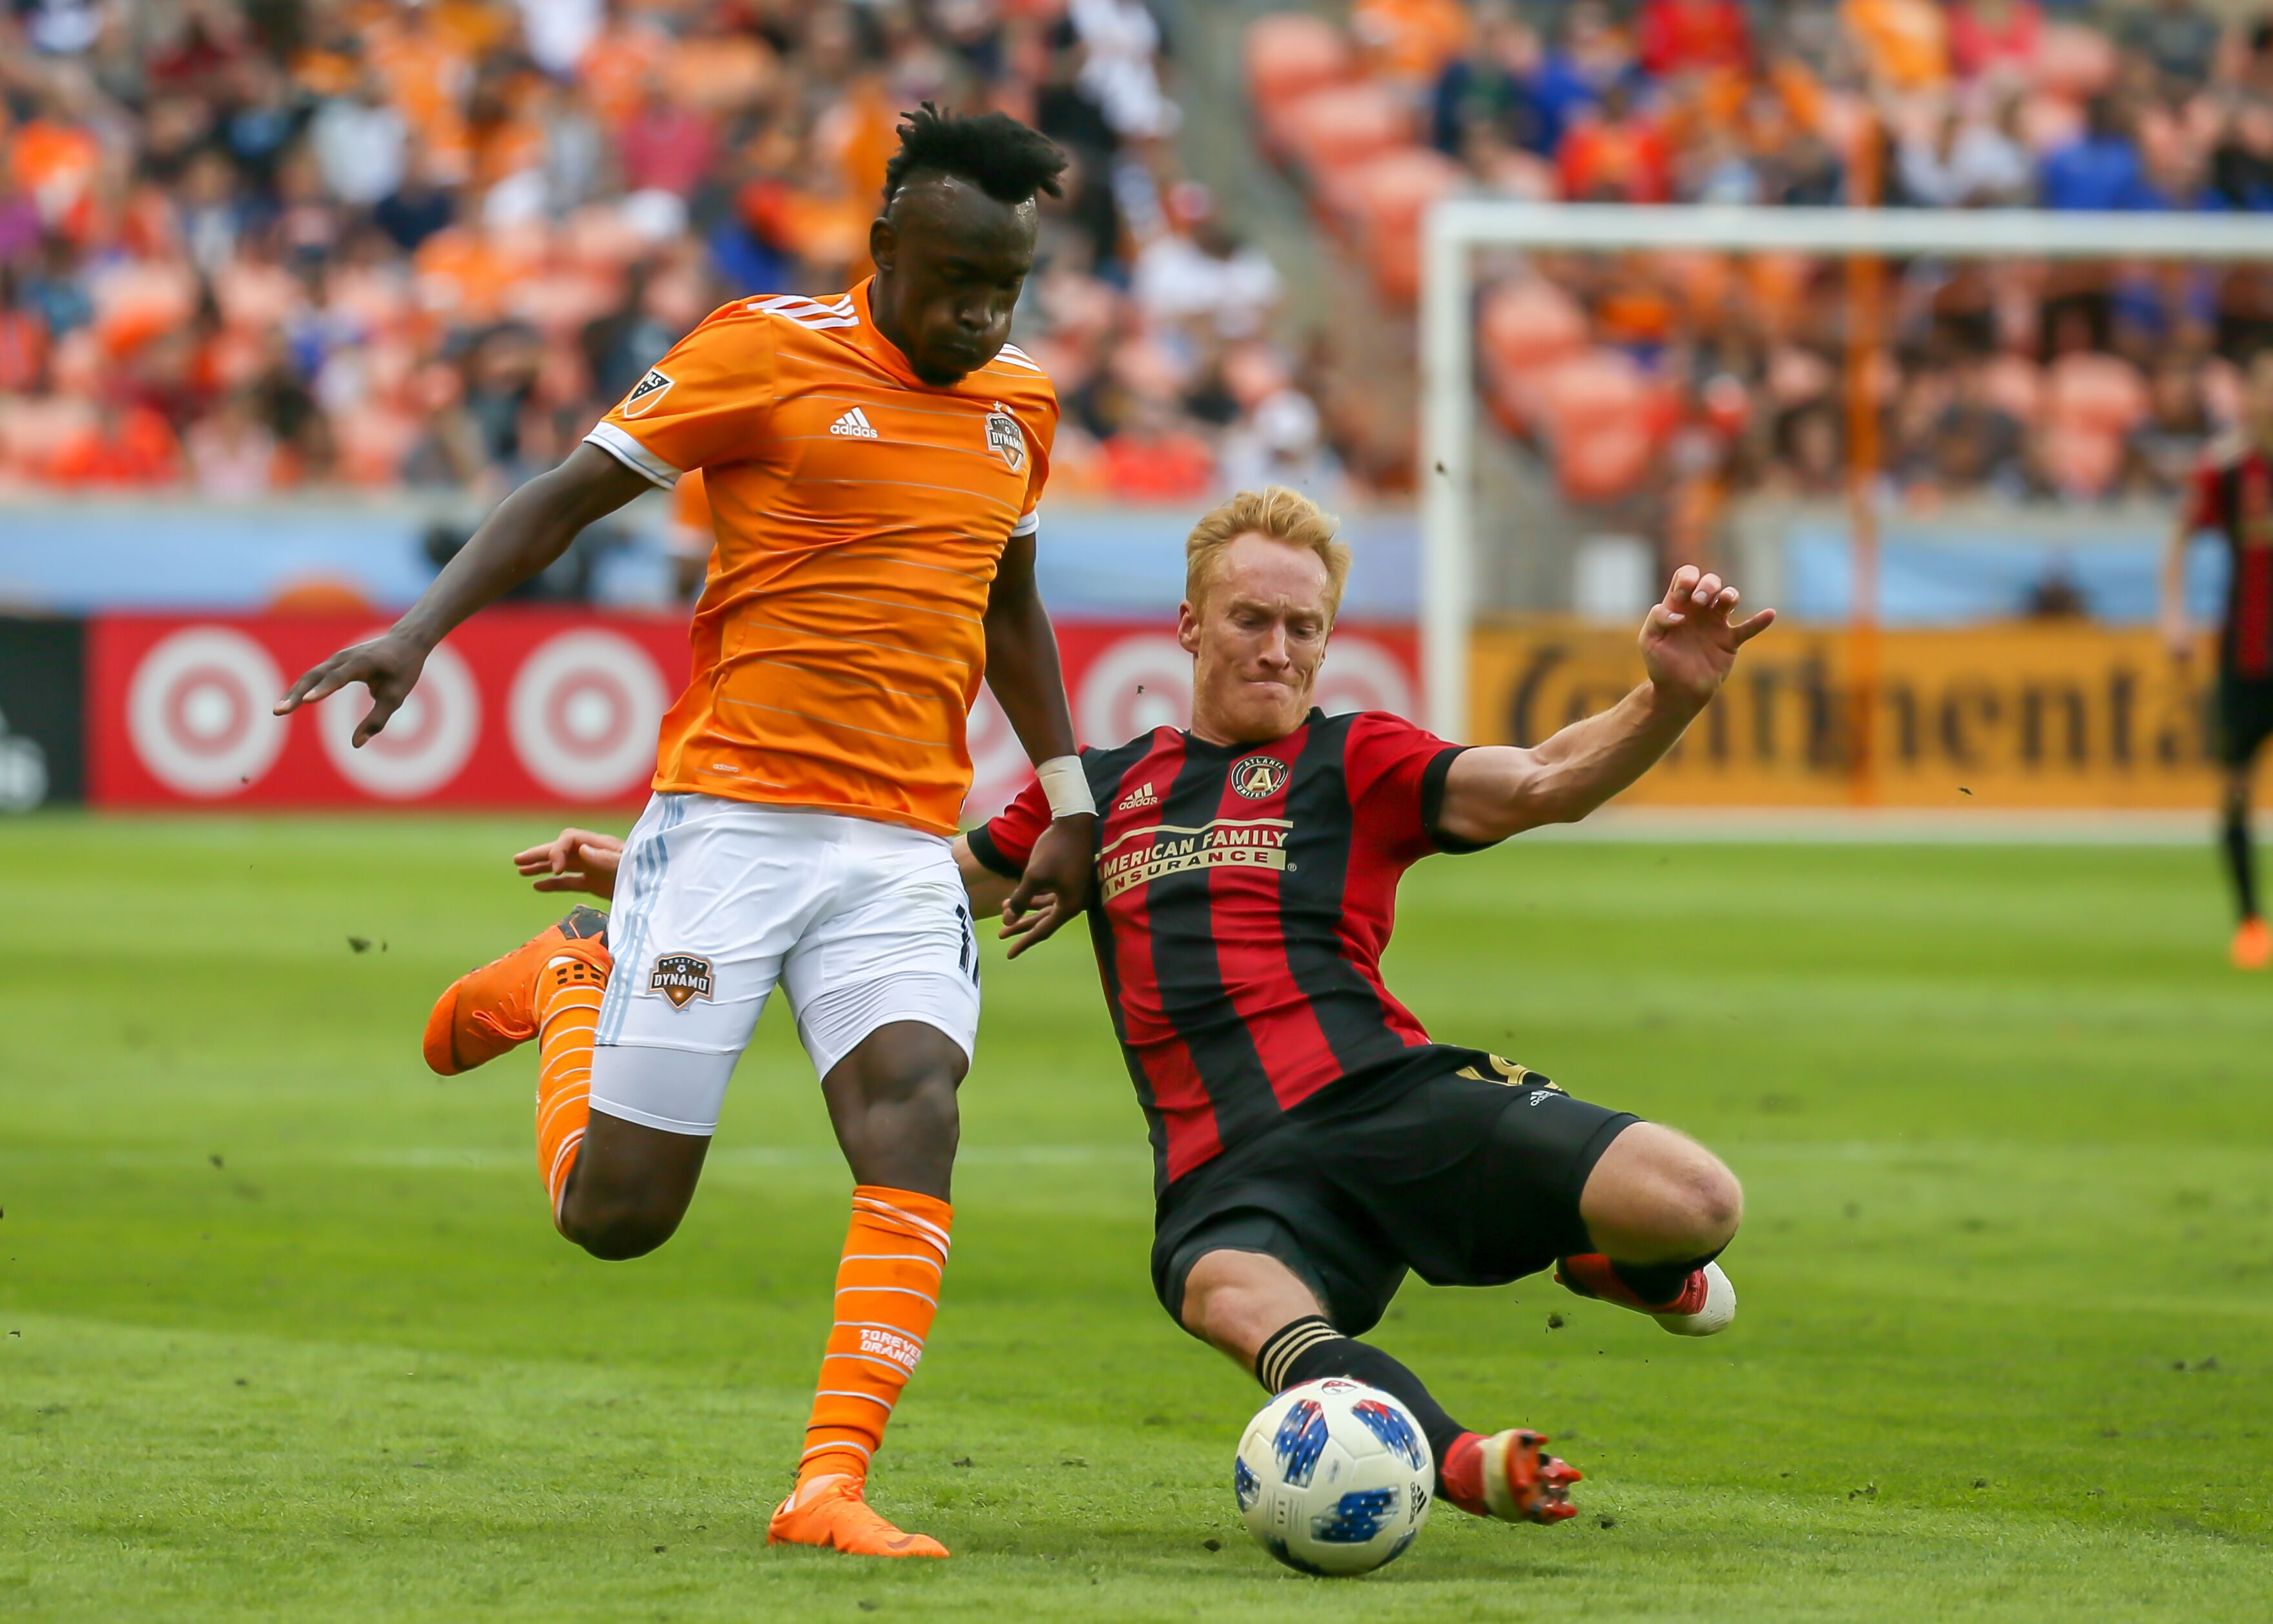 927144022-soccer-mar-03-mls-atlanta-united-fc-at-houston-dynamo.jpg